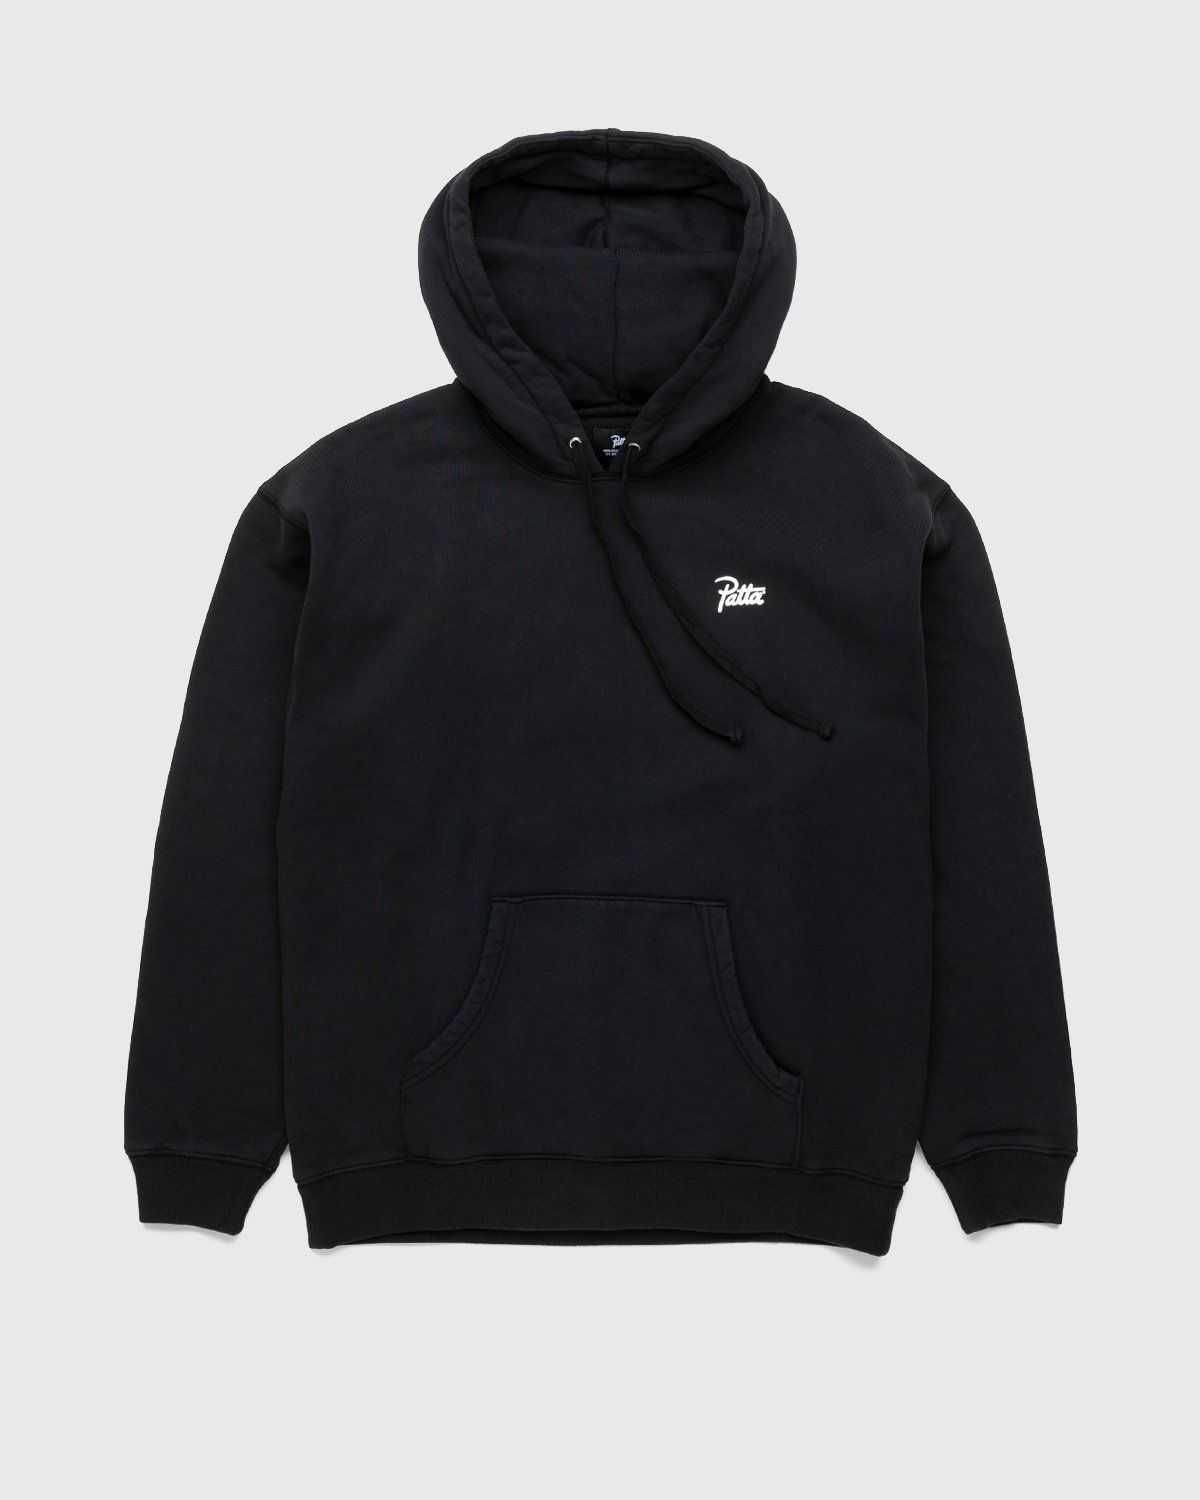 PATTA – This Or That Hooded Sweater Black - Image 2